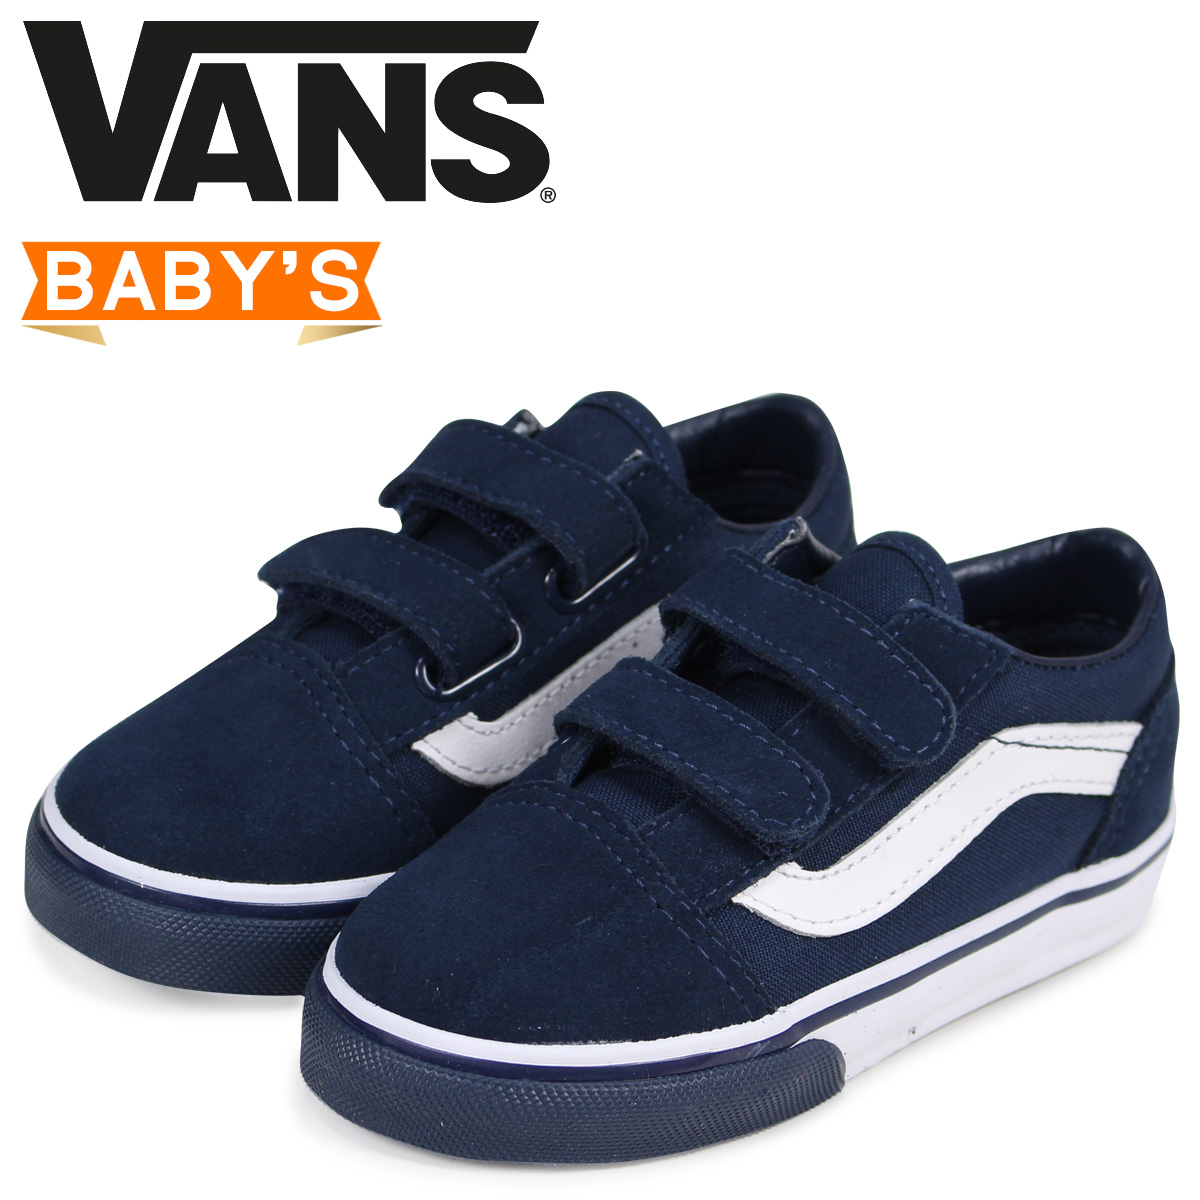 5b938ea41de Vans old school sneakers baby VANS station wagons TODDLER OLD SKOOL VELCRO  VN0A344KQ7I black  2 16 Shinnyu load